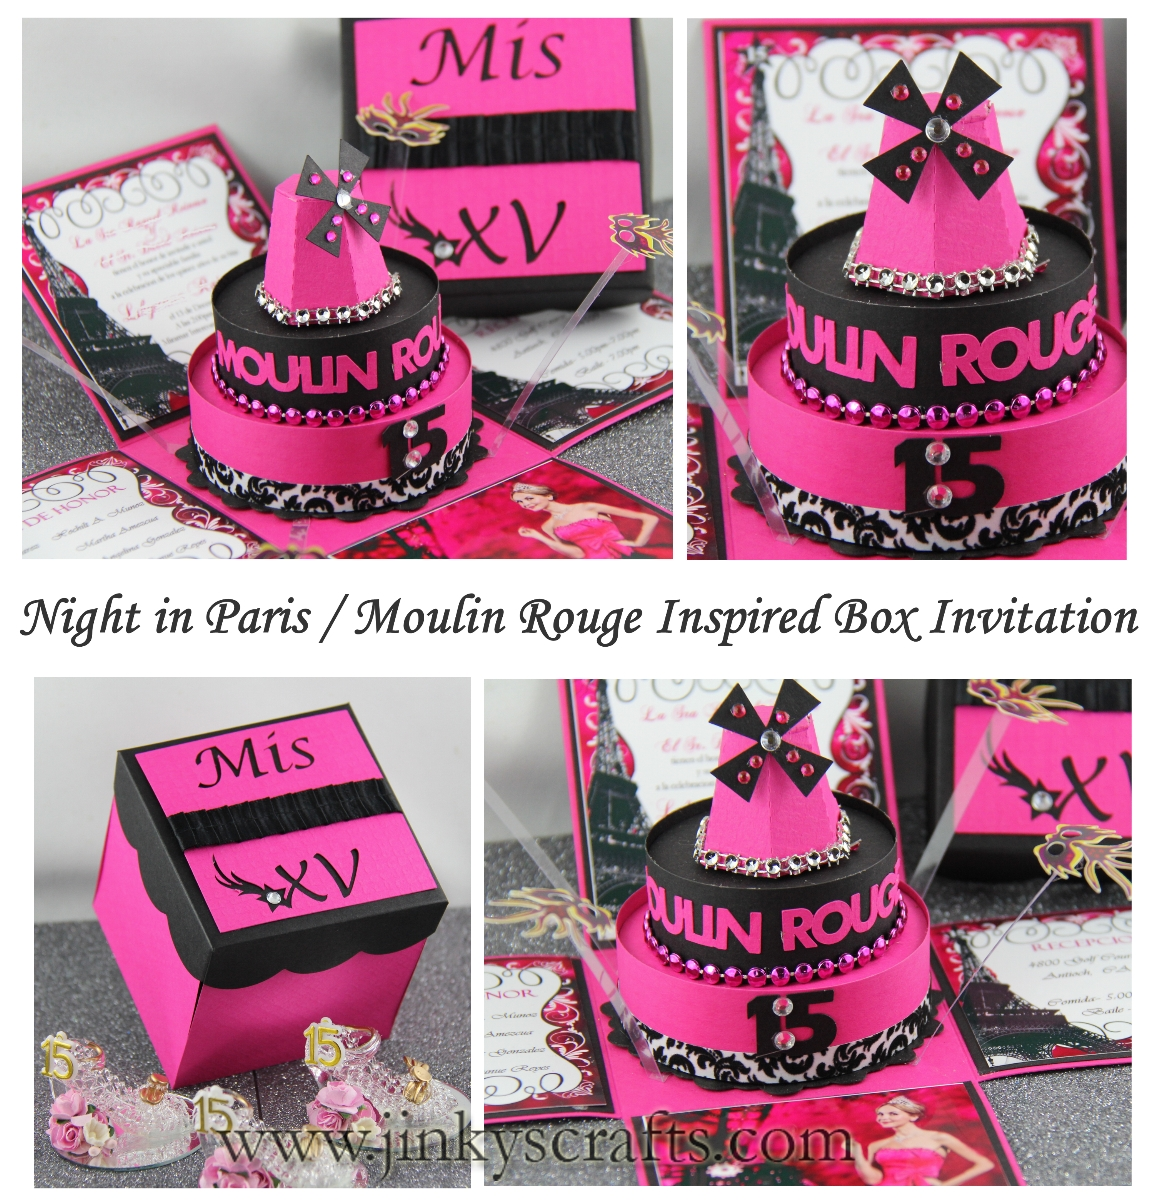 Jinkys Crafts Designs Night in Paris Moulin Rouge Theme